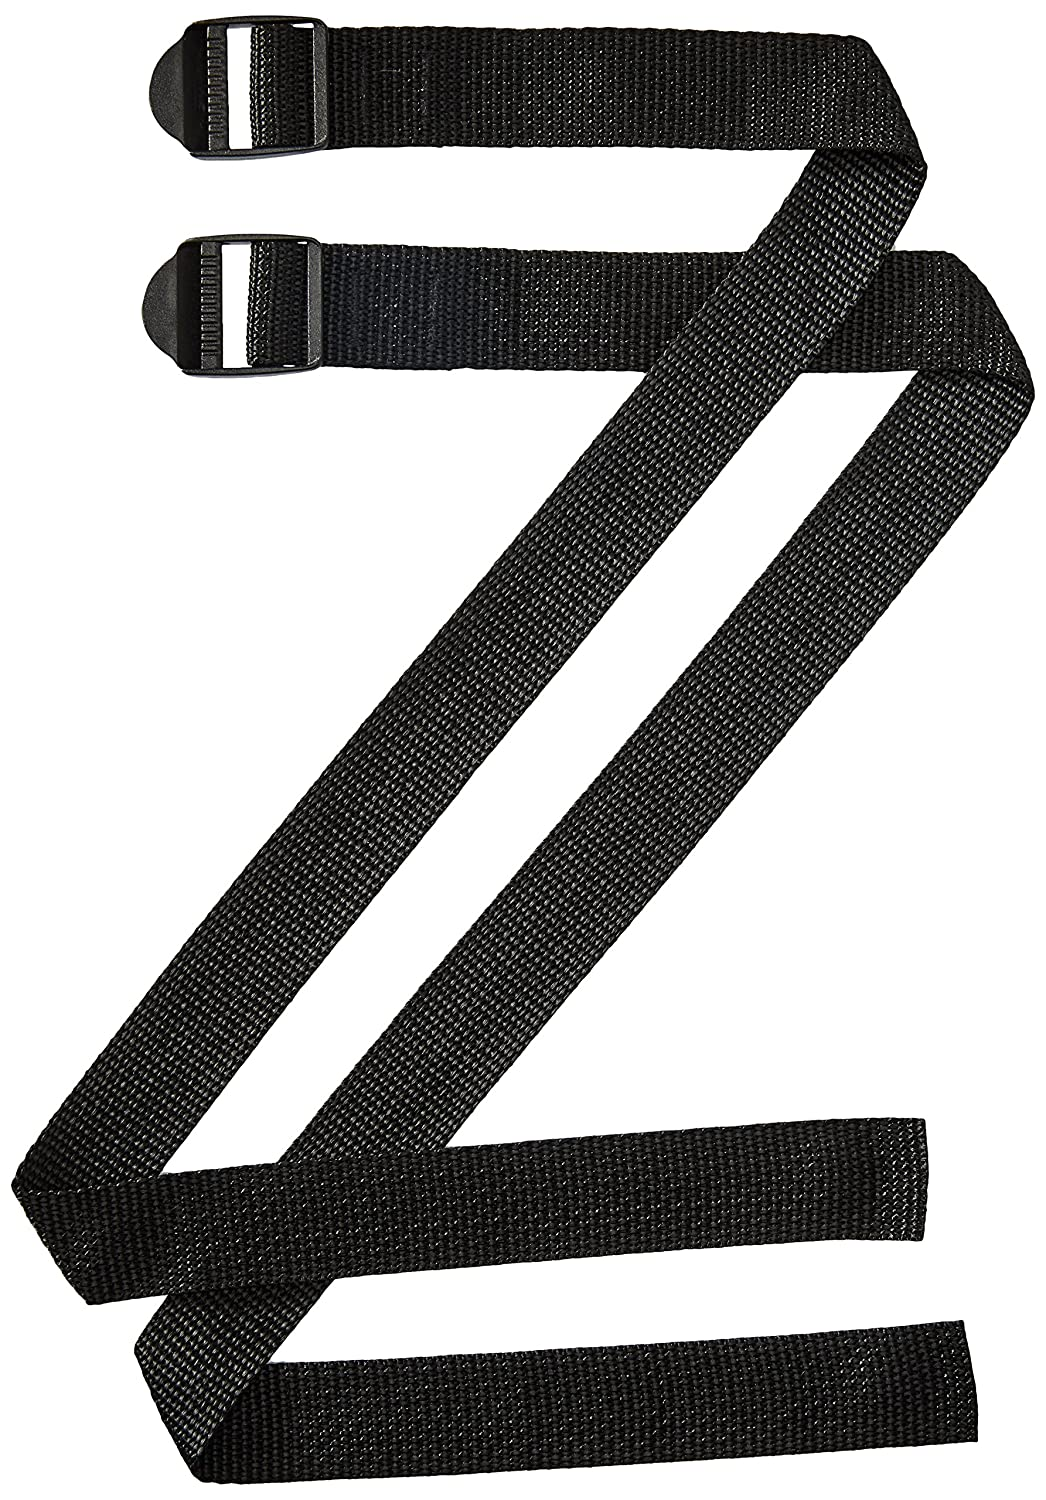 Pack of 2 Peregrine Outfitters Nylon Basic Accessory Straps